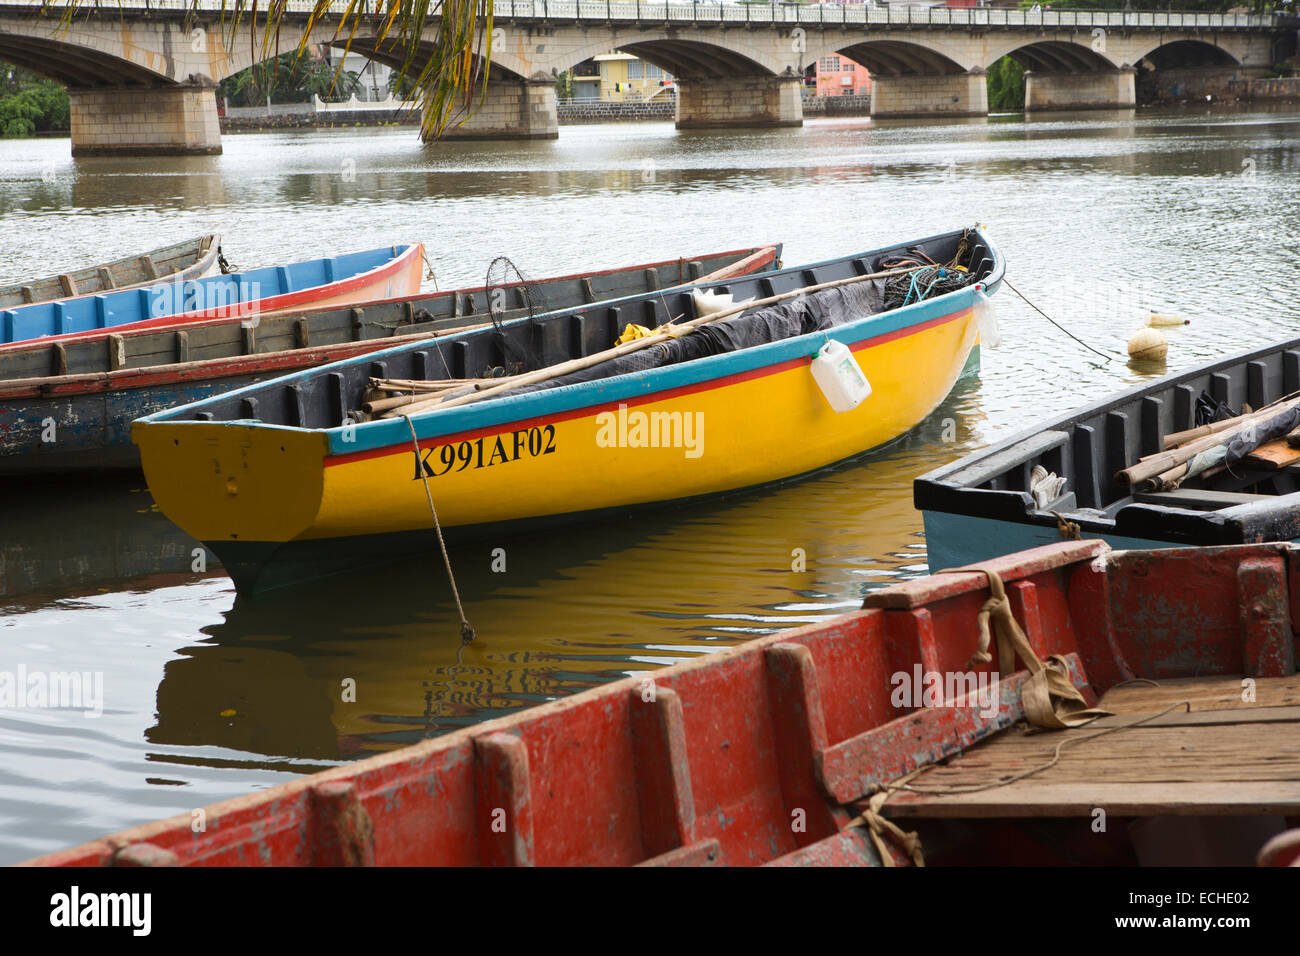 Mauritius, Mahebourg, fishing boats moored on banks of Riviere La Chaux River - Stock Image